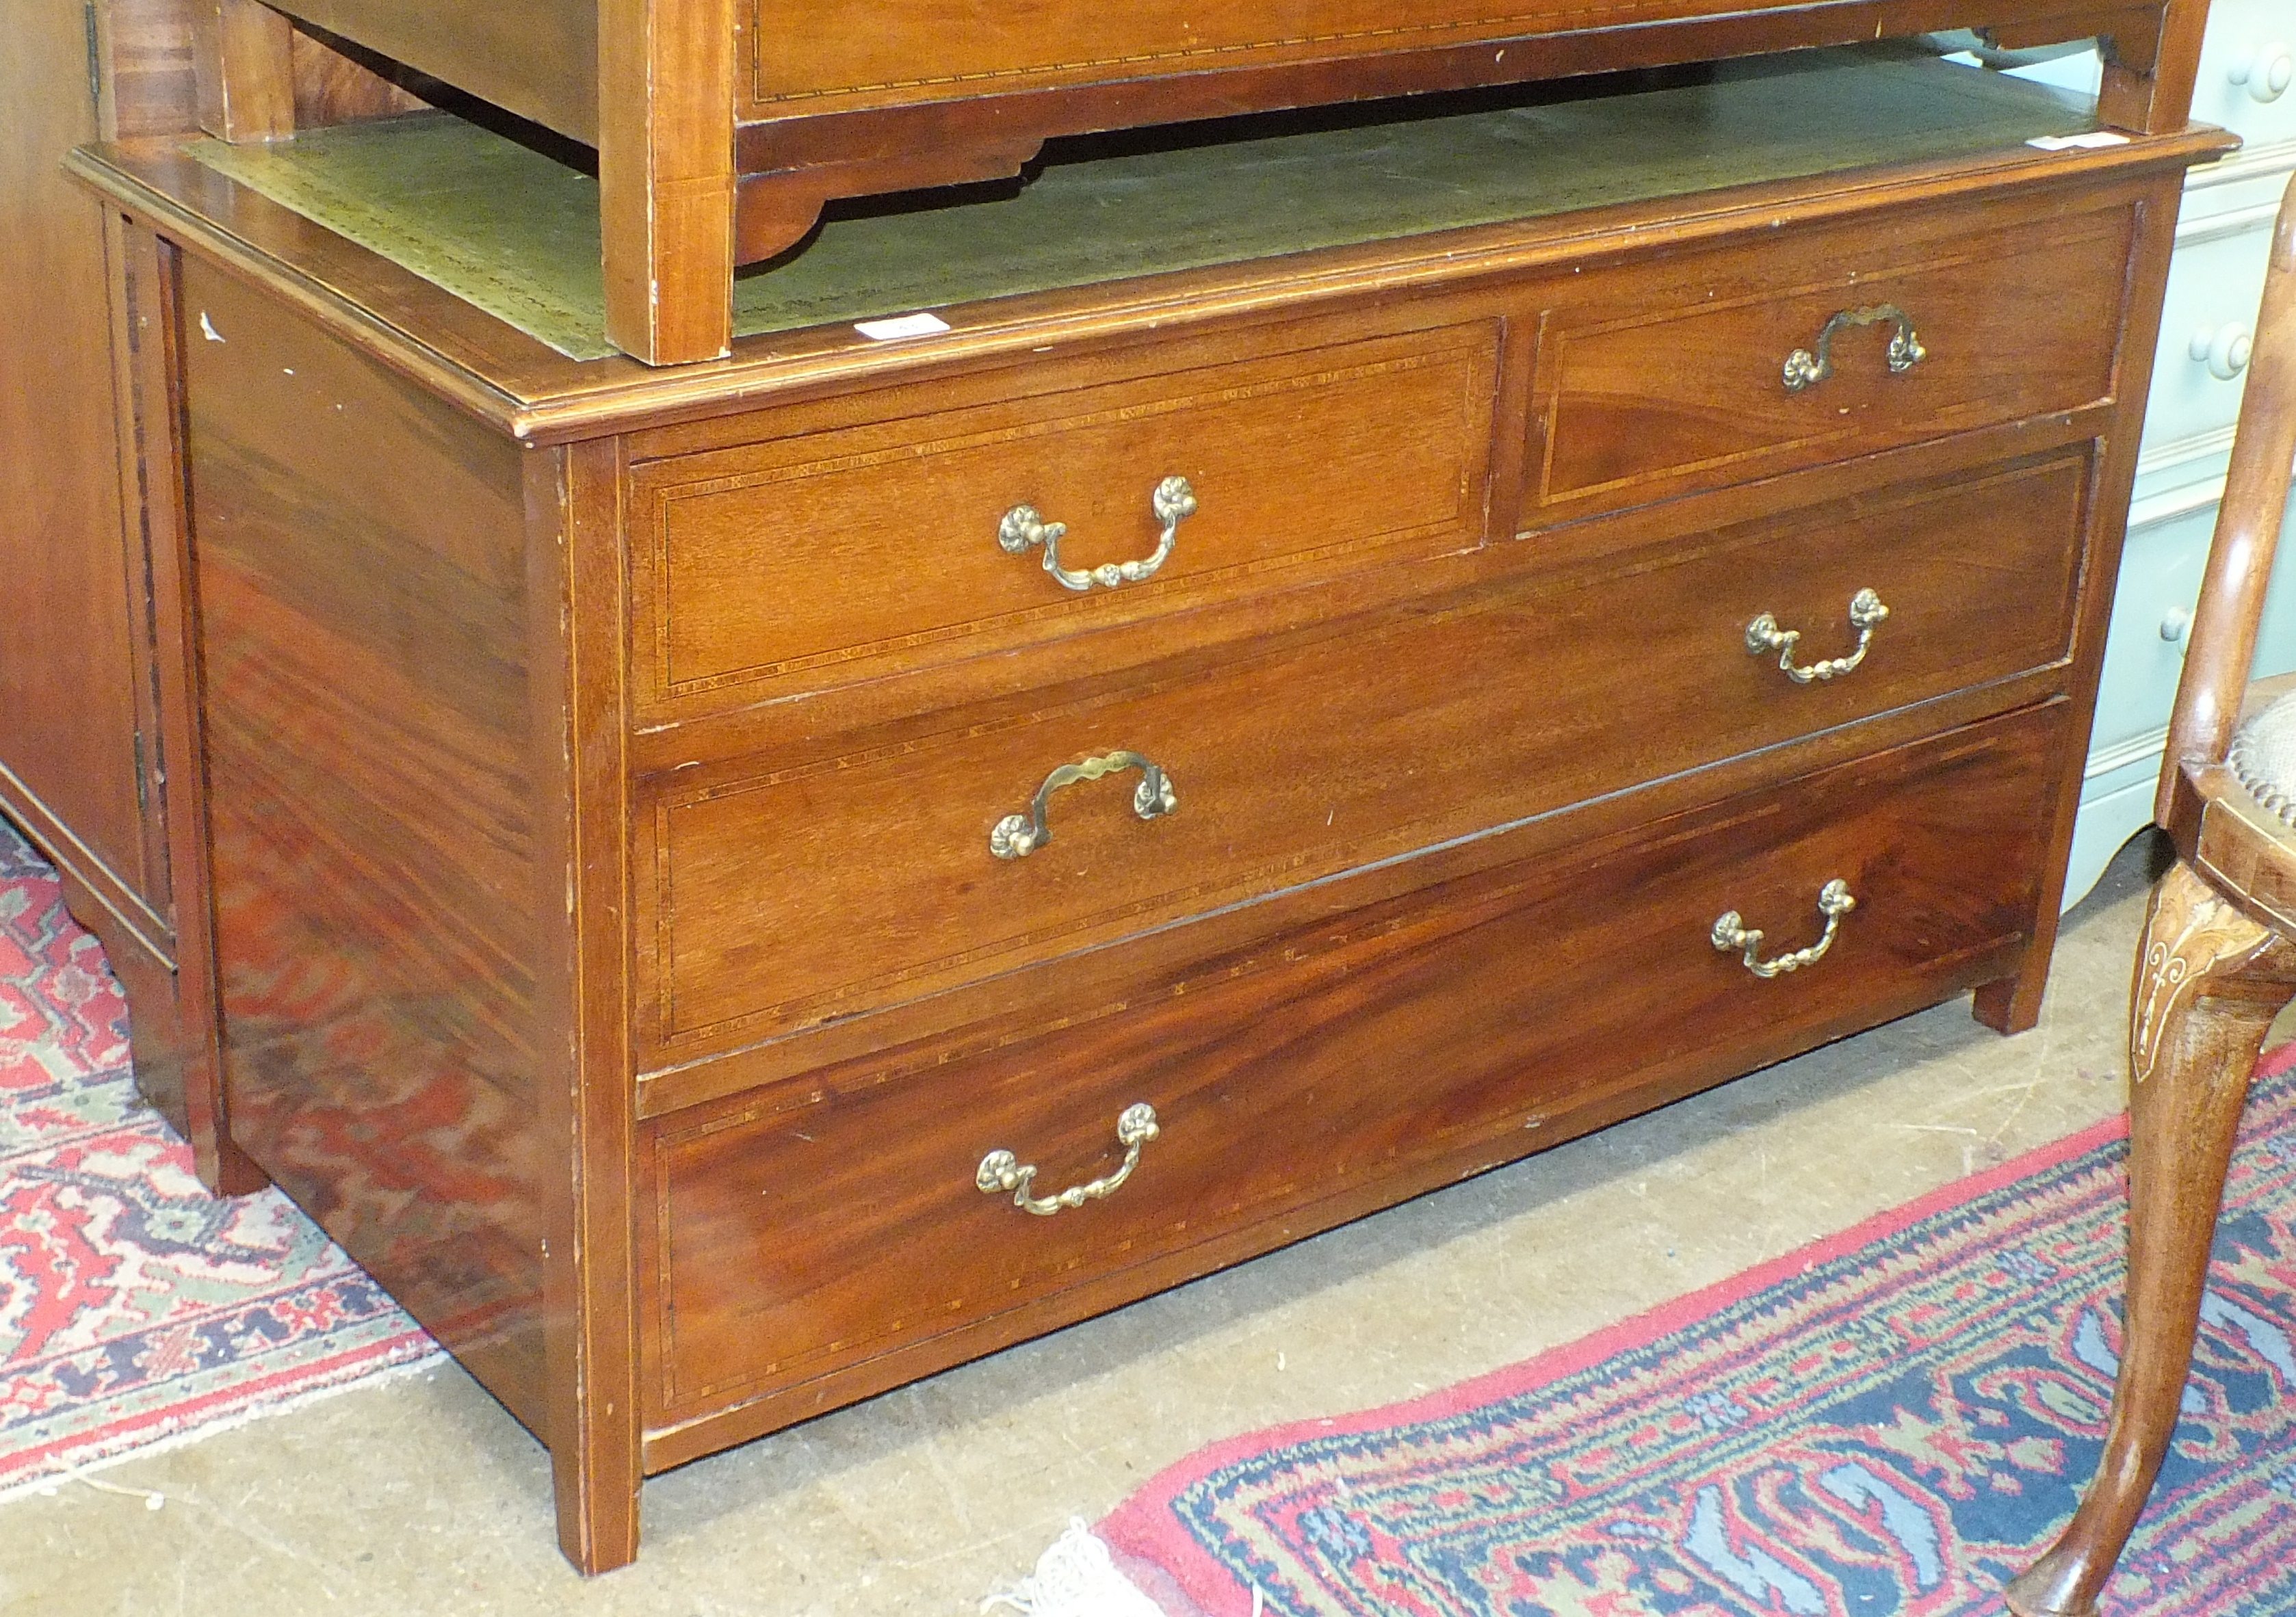 Lot 43 - An inlaid mahogany low chest/table fitted with two short and two long drawers, to rectangular top